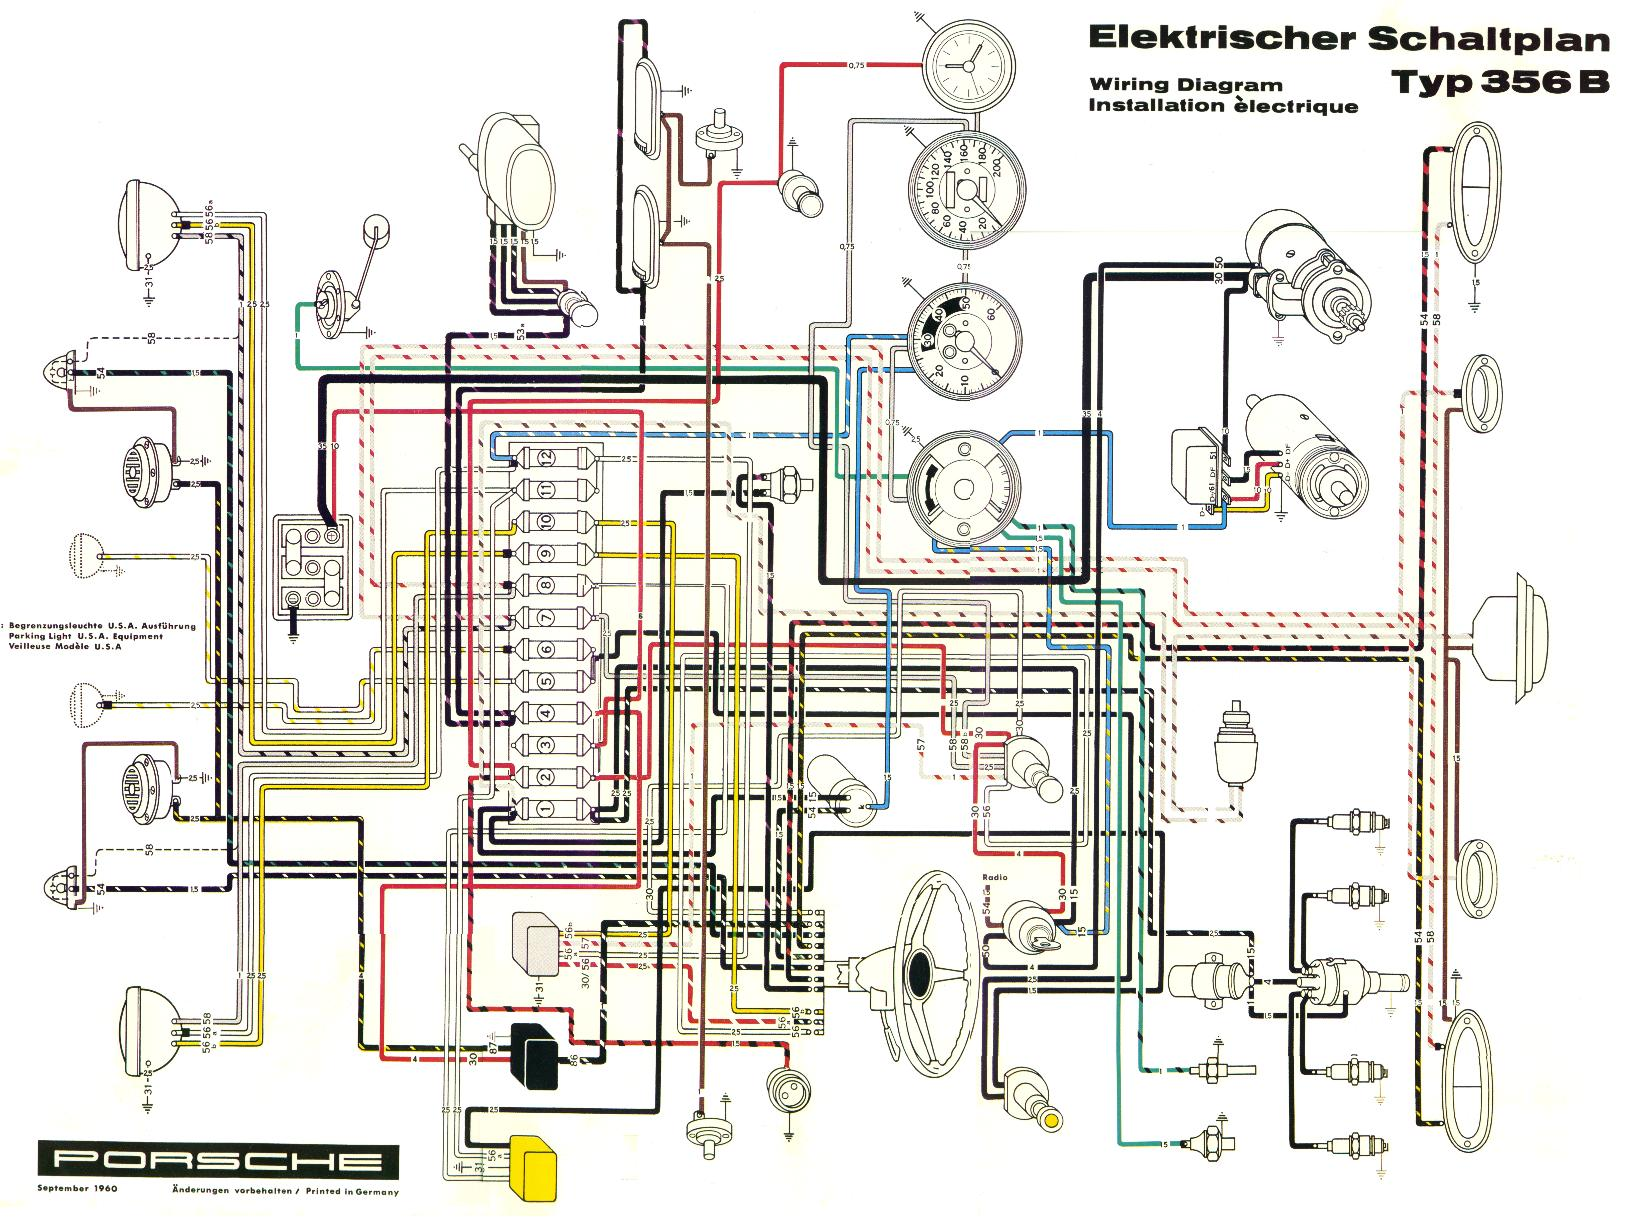 Bwiring on Wiring Diagram For 98 Civic Cluster